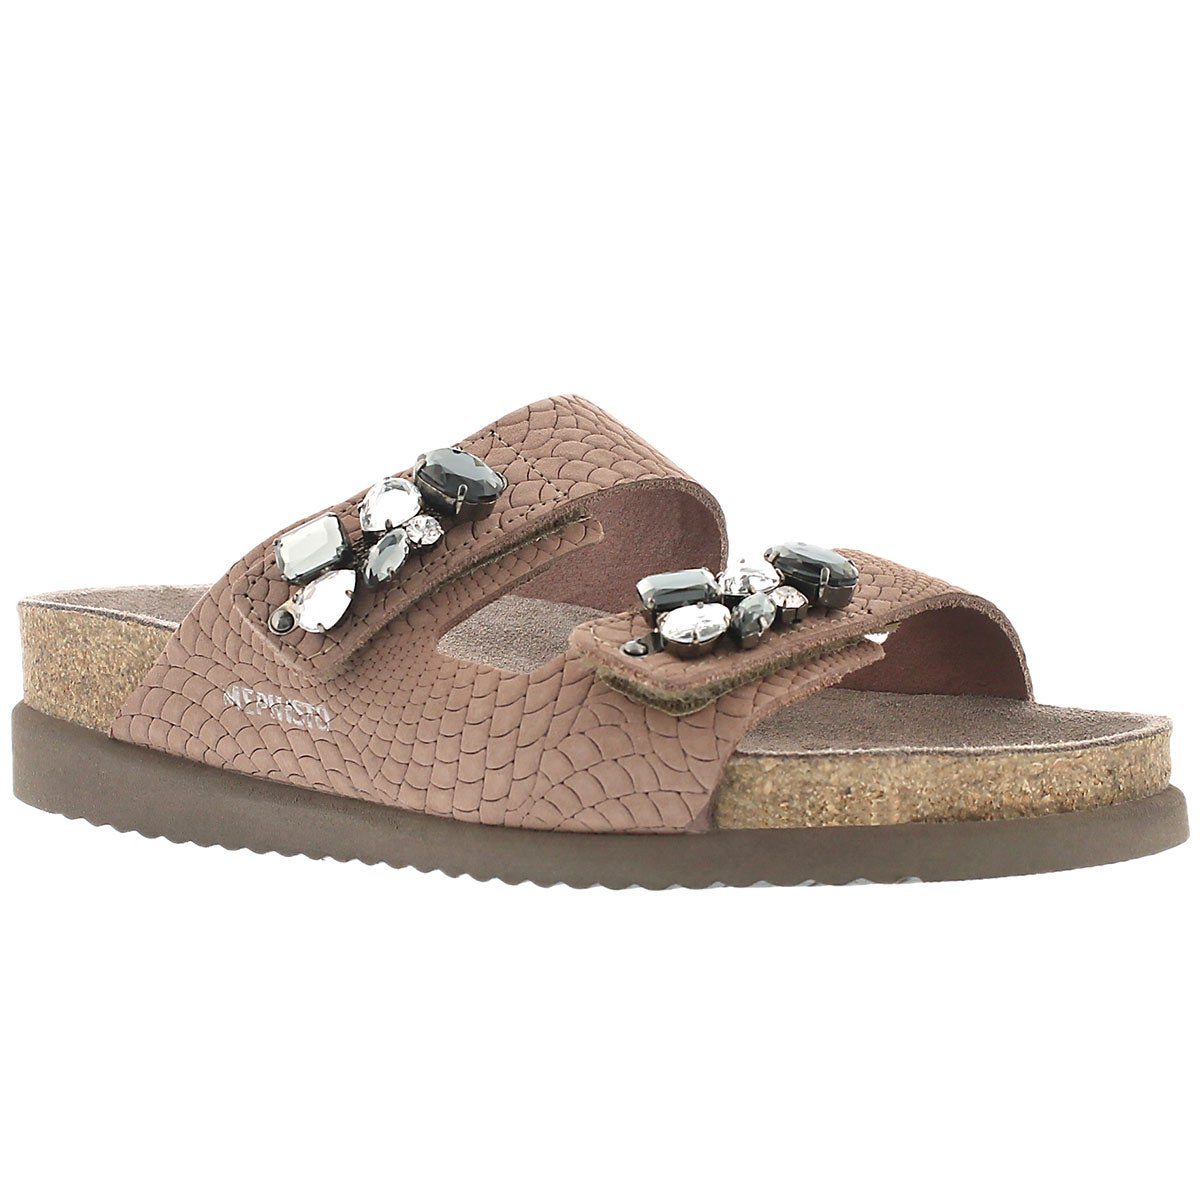 Women's HANA pink rio cork footbed sandals